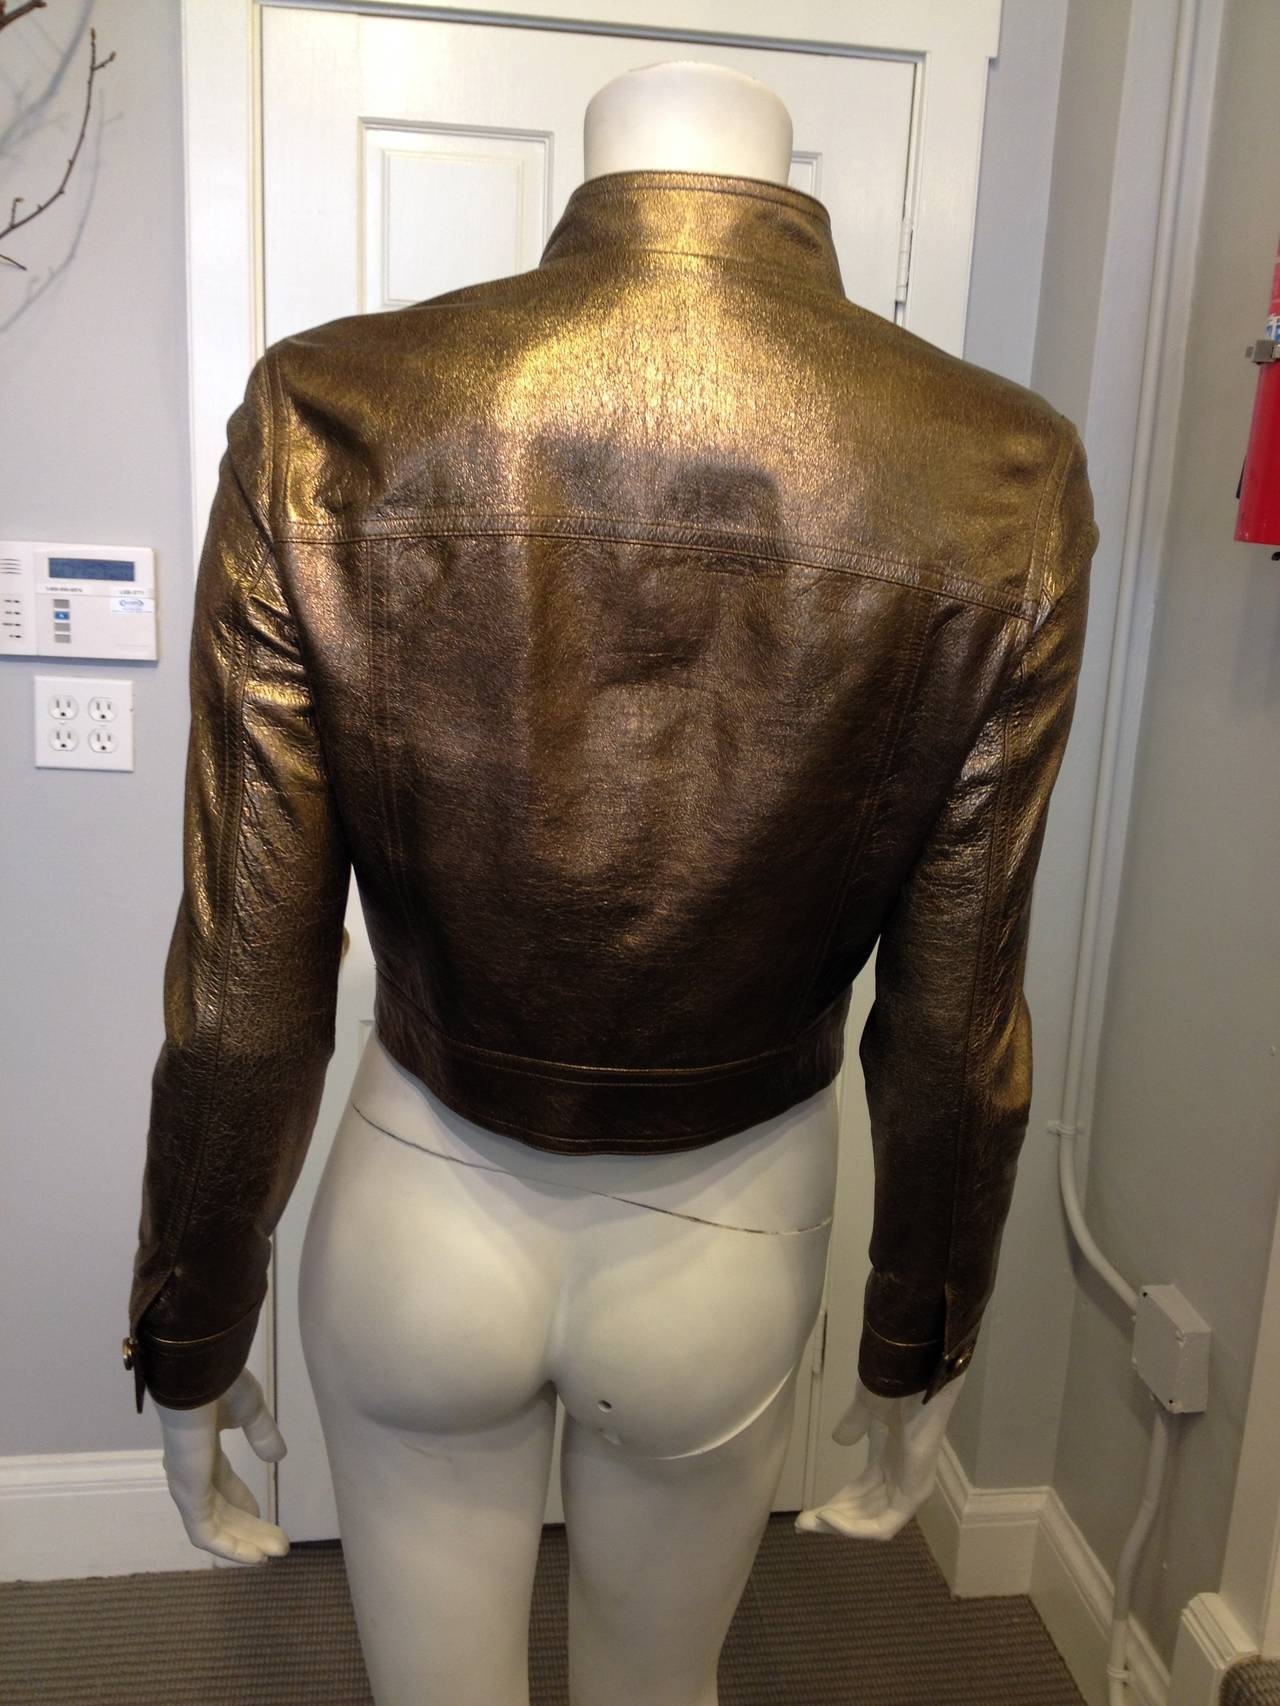 The ultra soft leather of this Celine jacket has a glossy bronze metallic finish, and the jean-jacket cut adds a cool and easy element for everyday. Wear this jacket with a hoodie and tight black jeans or over a cream satin slip dress - this piece